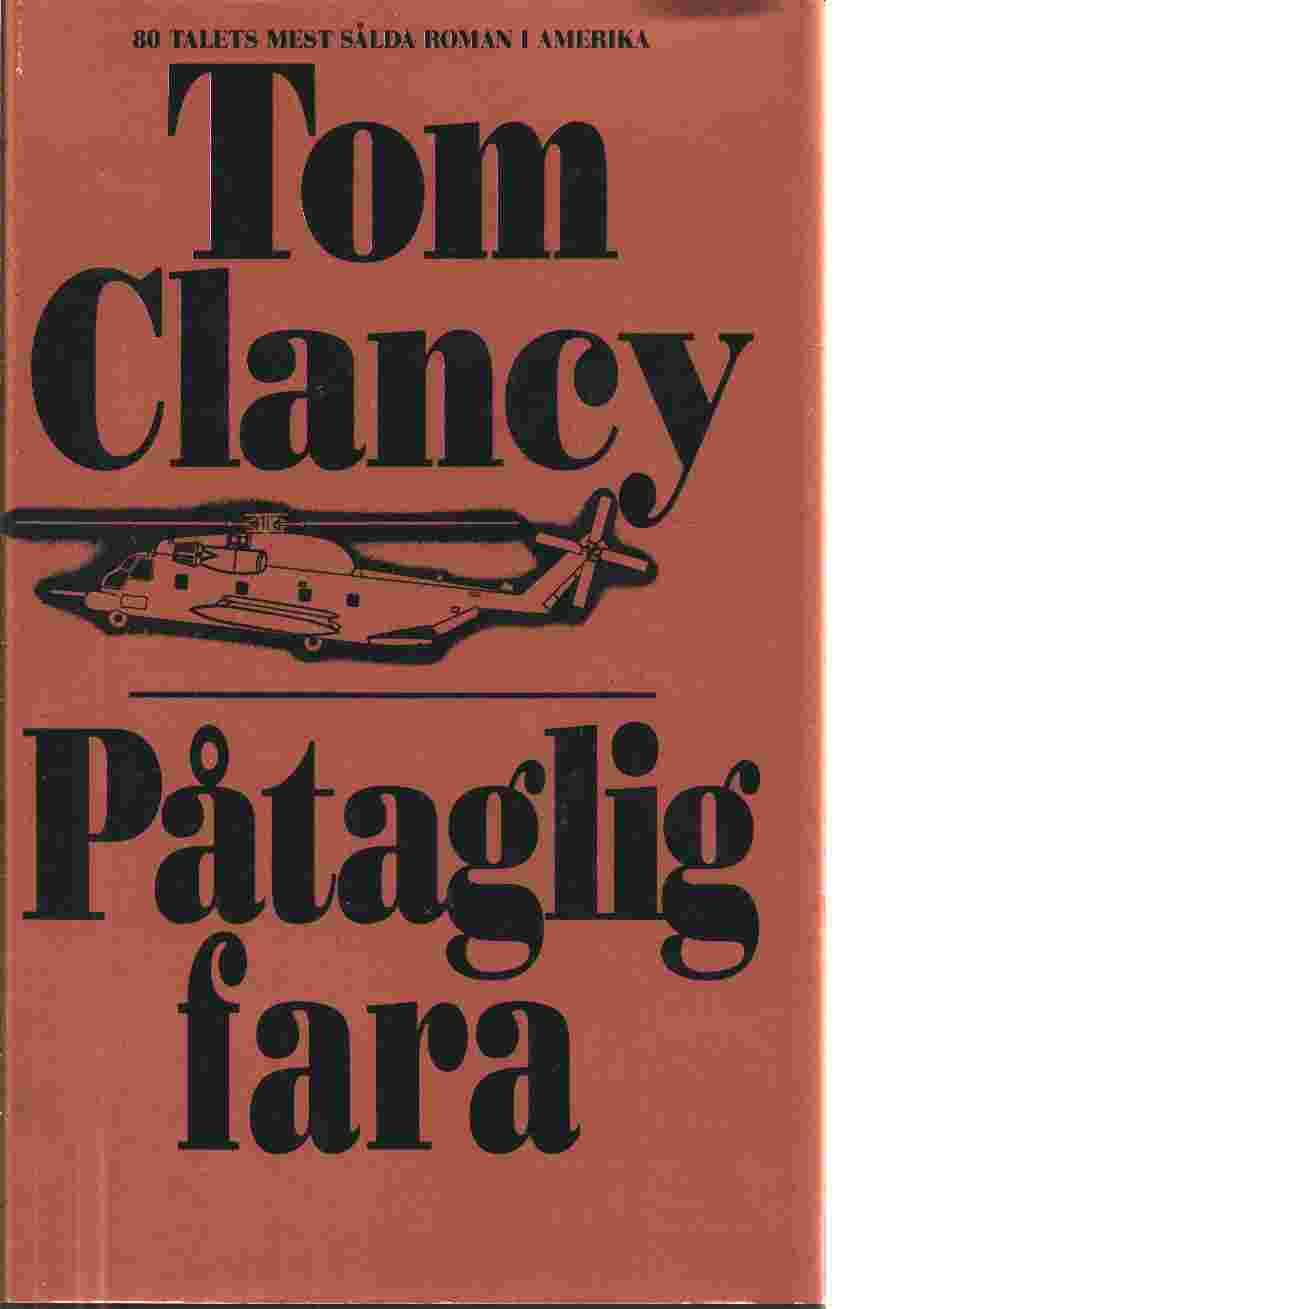 Påtaglig fara - Clancy, Tom